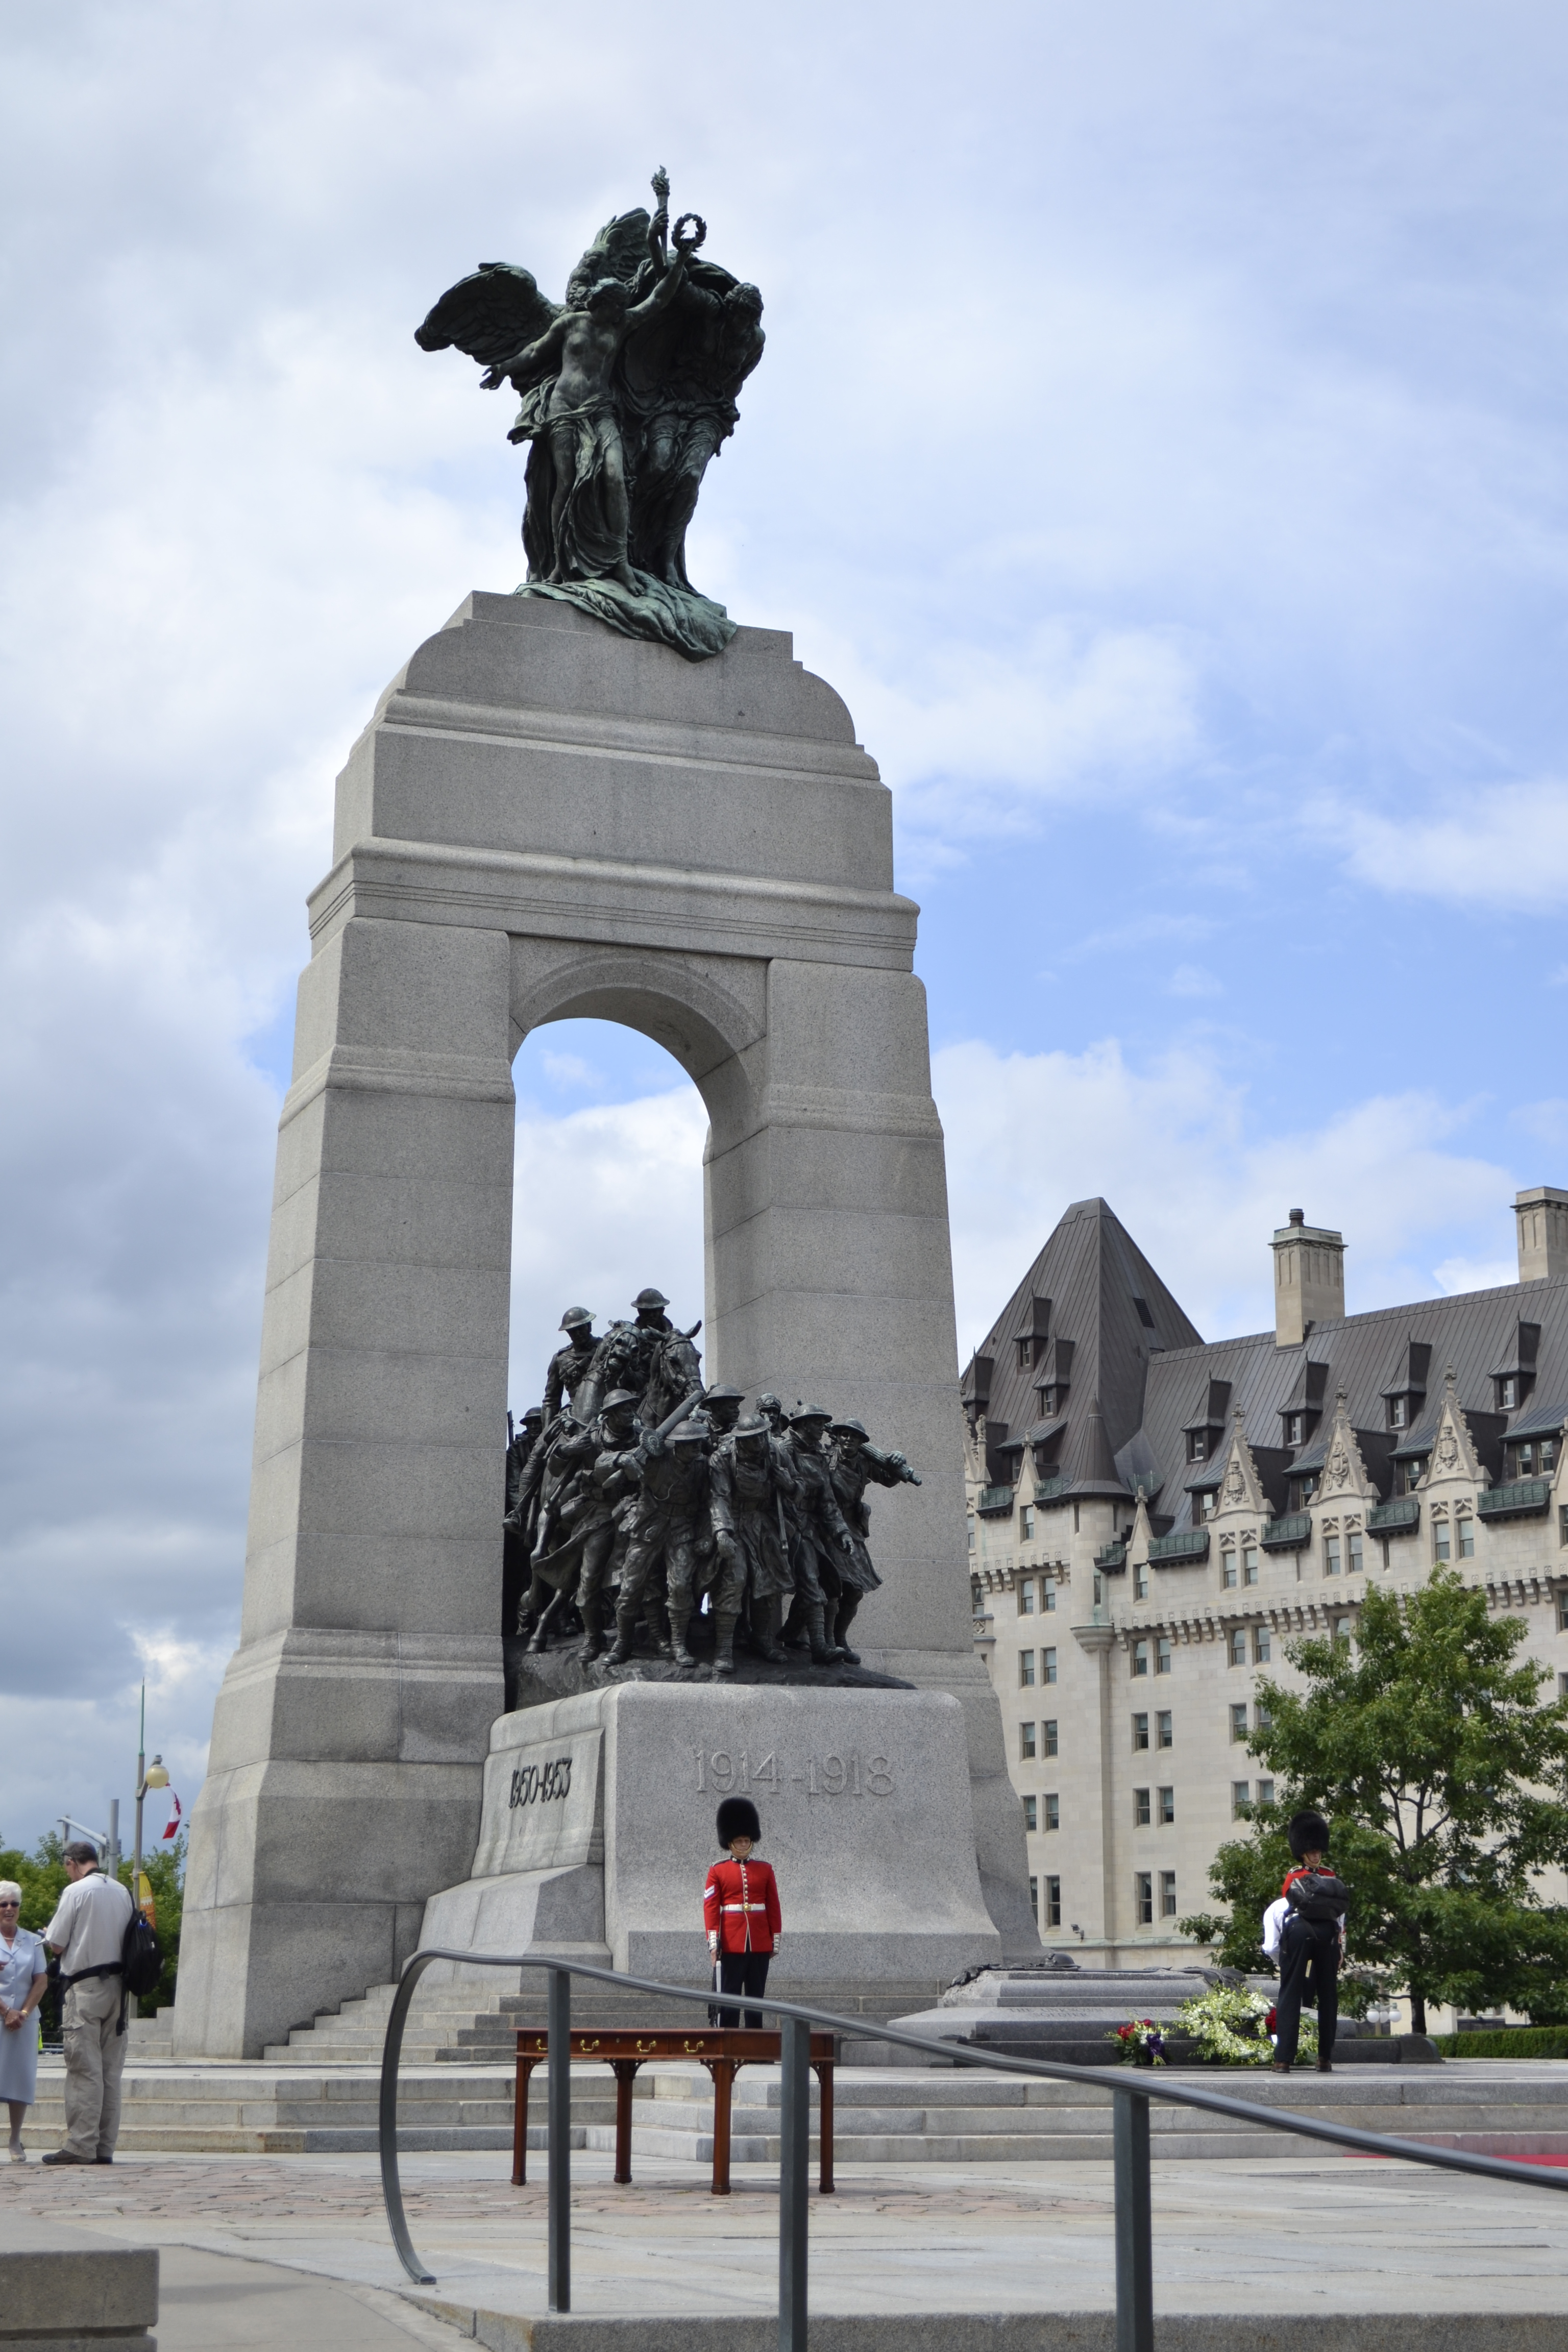 http://upload.wikimedia.org/wikipedia/commons/7/74/National_war_memorial,_july_2011.jpg